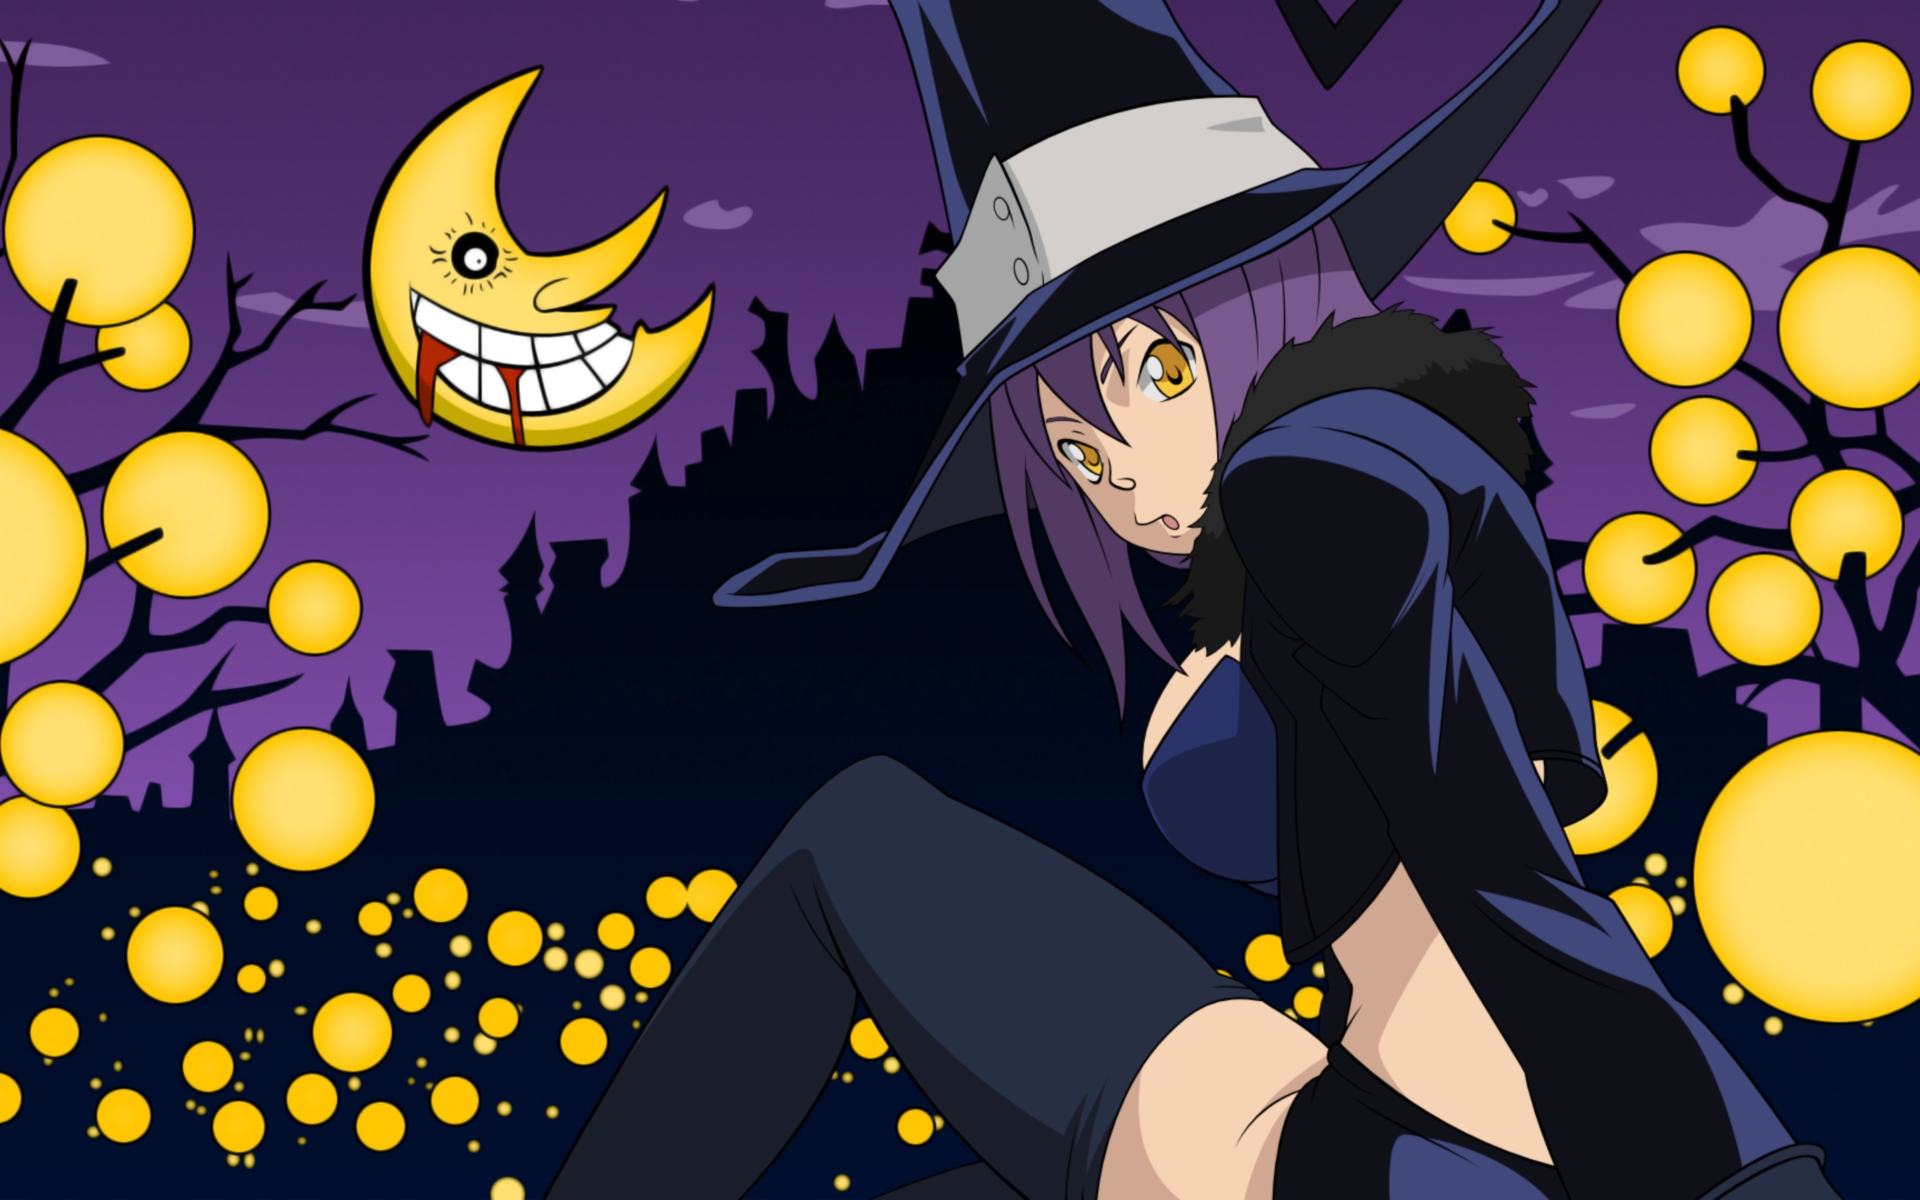 Soul eater blair witches free wallpaper wallpaperjam voltagebd Gallery